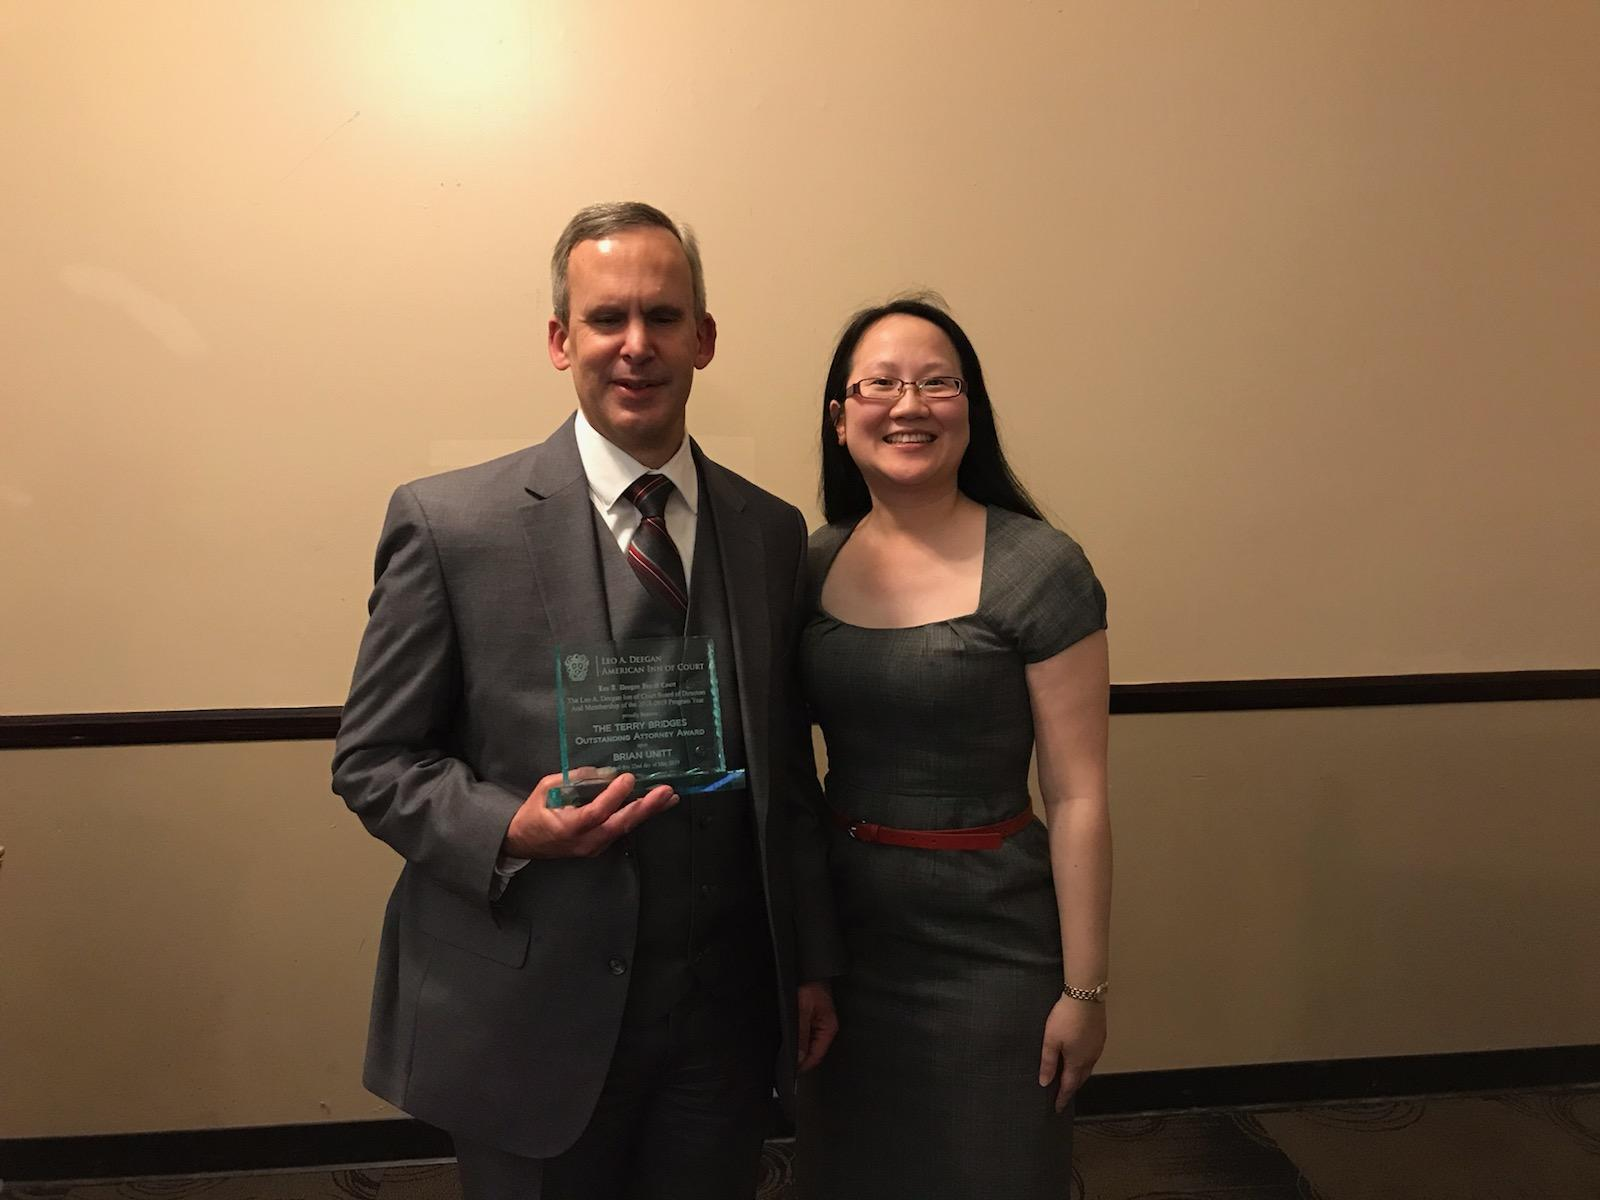 Brian Unitt, recipient of the 2018-2019 Terry Bridges Outstanding Attorney Award, and L. Alexandra Fong, President of the Leo A. Deegan Inn of Court.